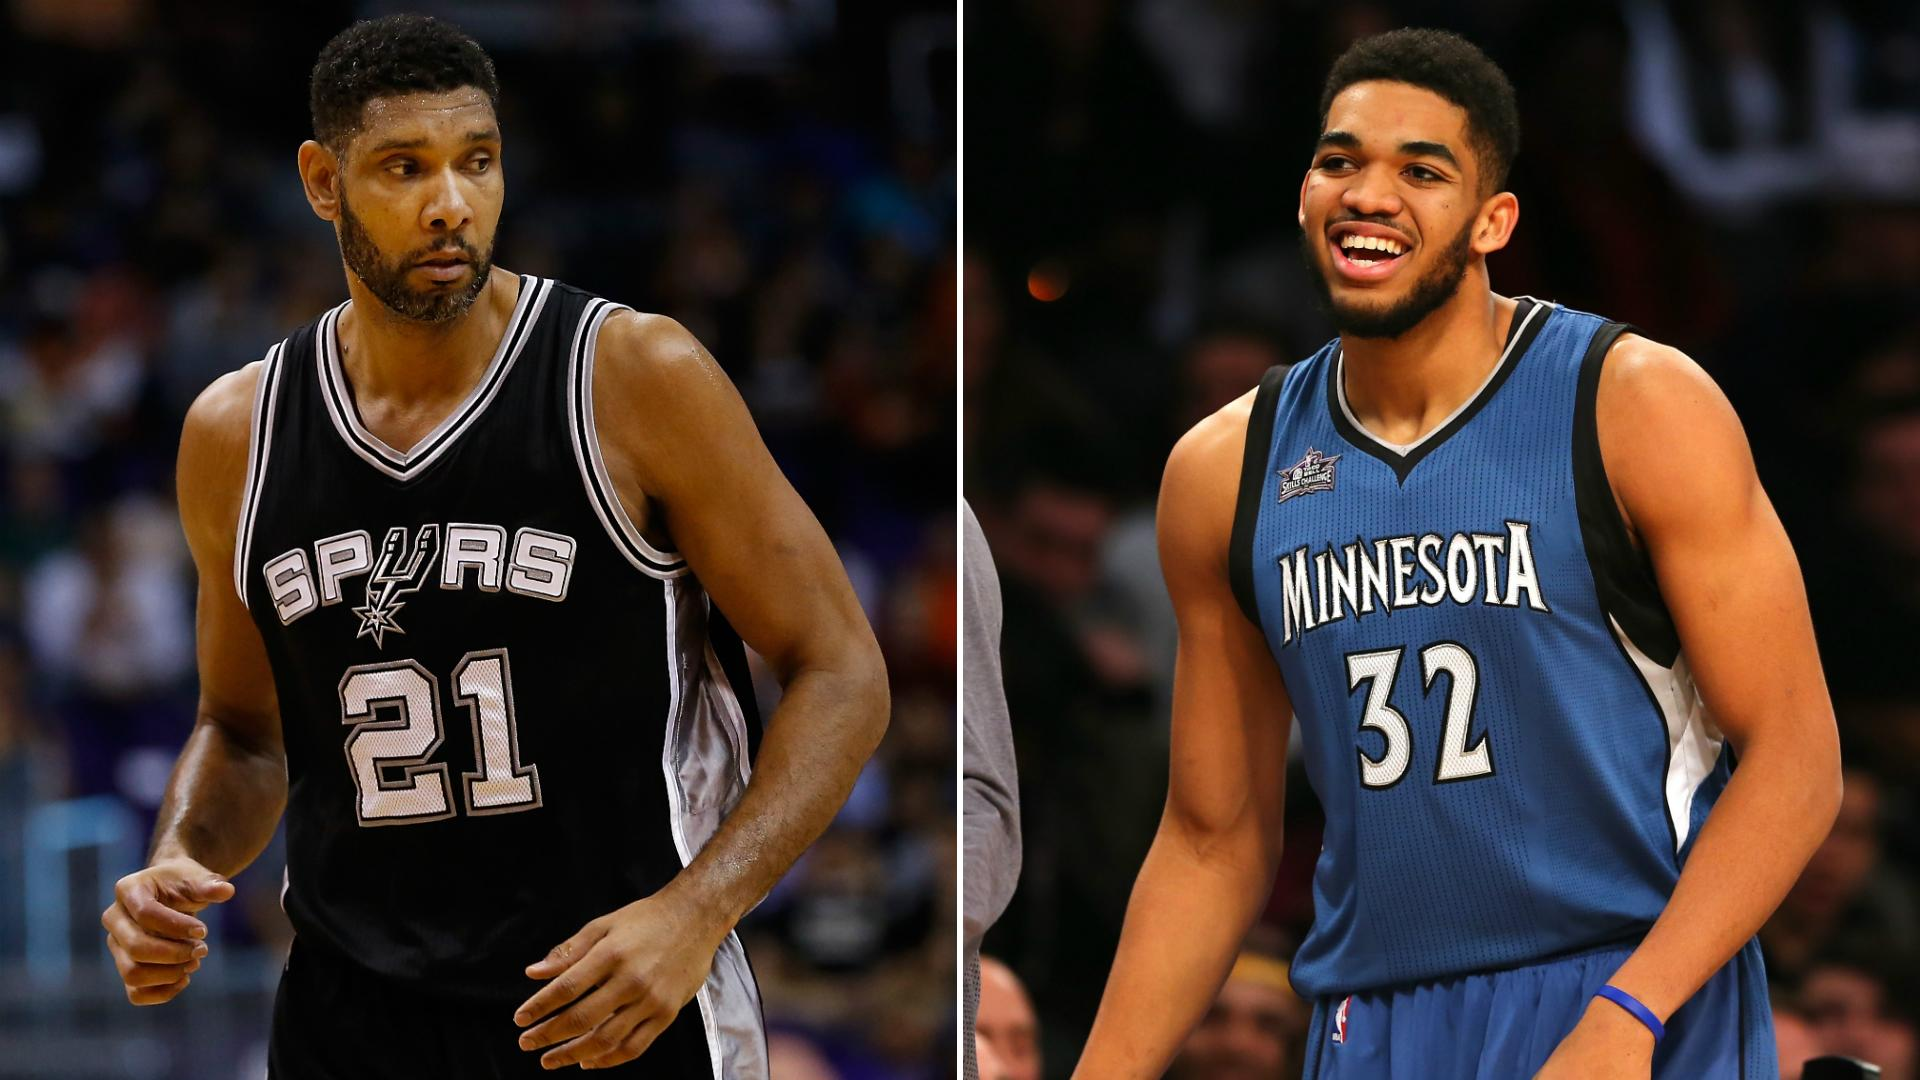 The best active NBA player of every age, from 19 to 39